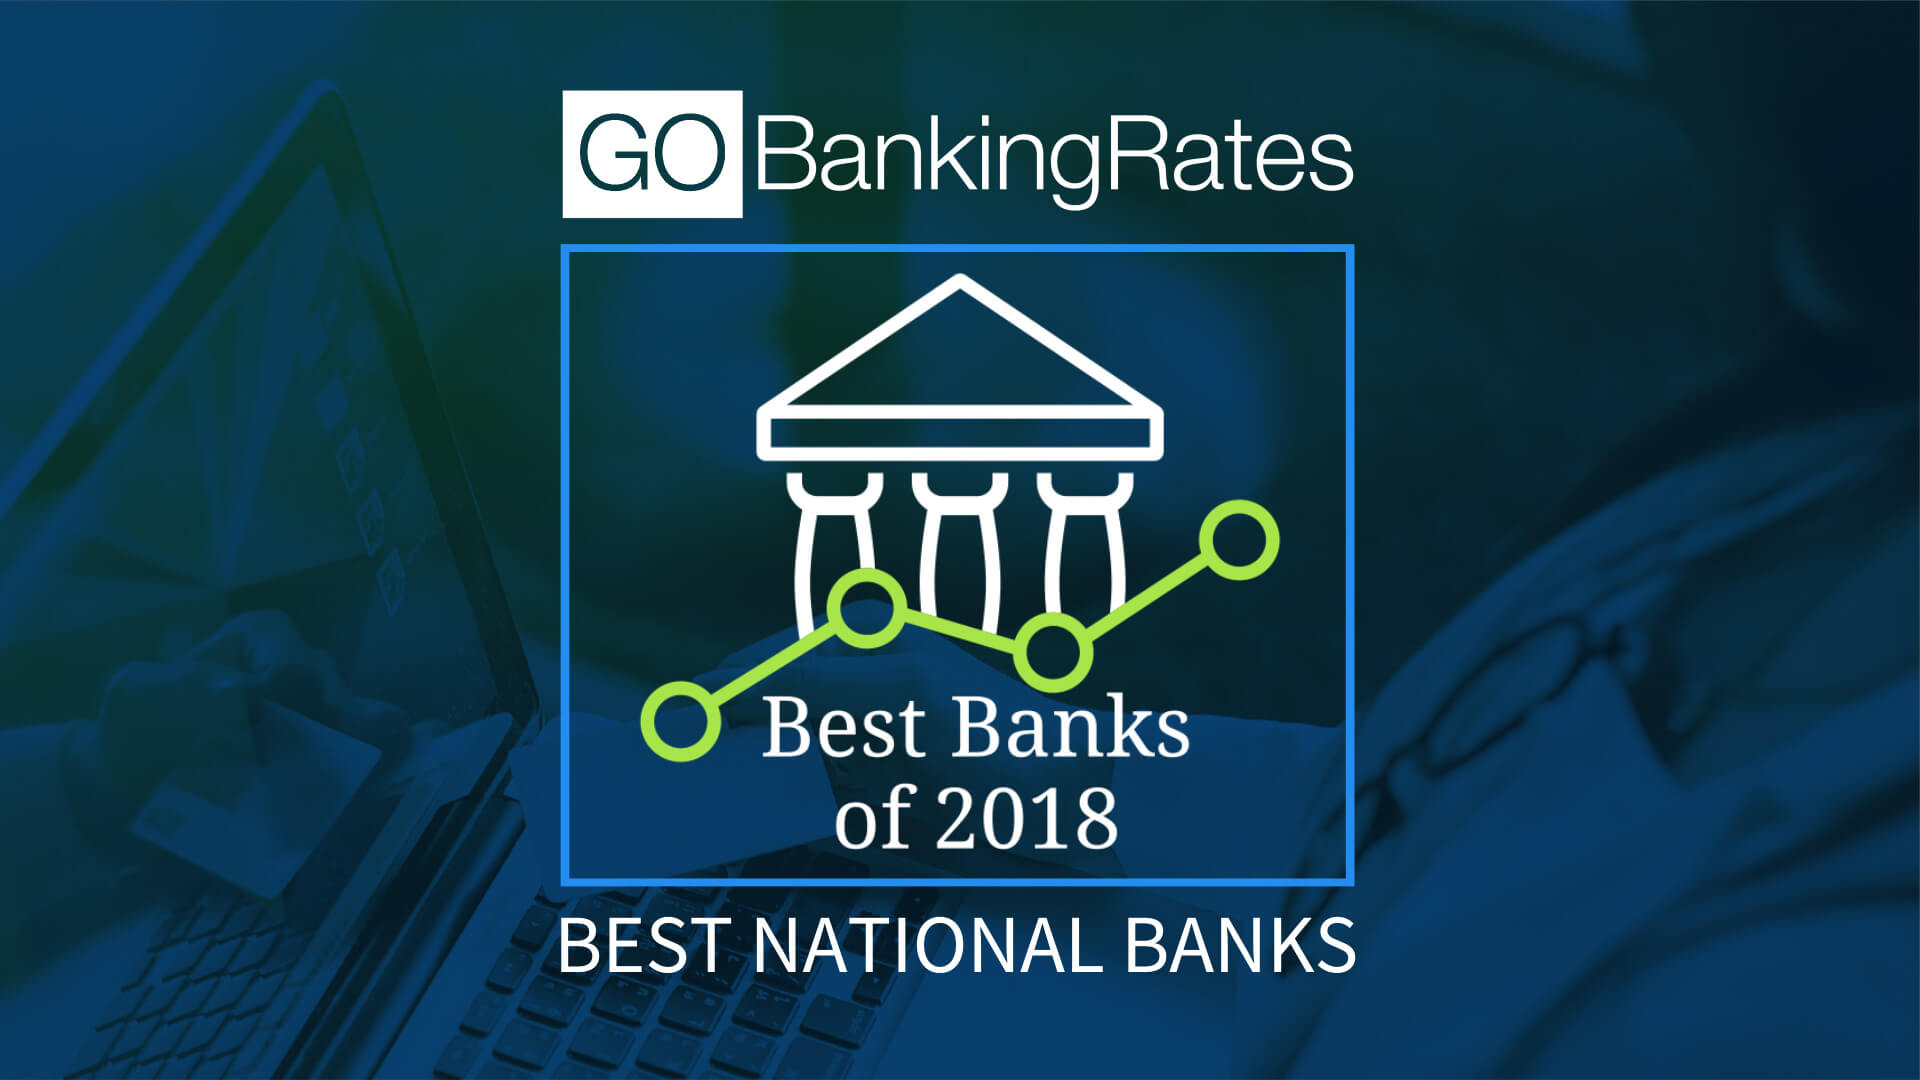 How Much Wells Fargo Atm Fees Cost Gobankingrates Bank International Wiring Instructions 10 Best National Banks Of 2018